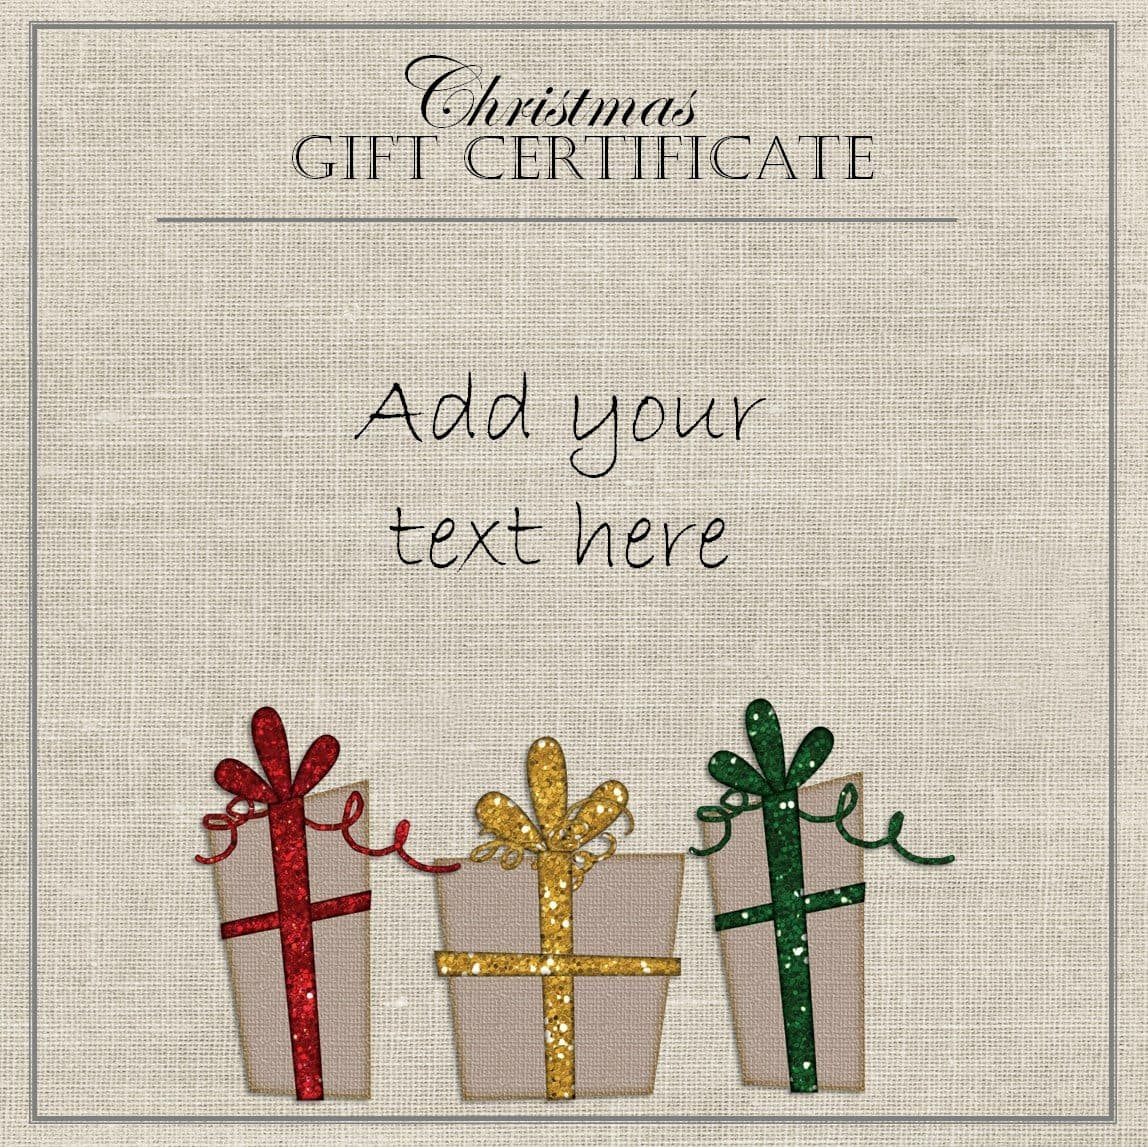 Free christmas gift certificate template customize online download elegant gift certificate template with three gifts with red yellow and green ribbons xflitez Images